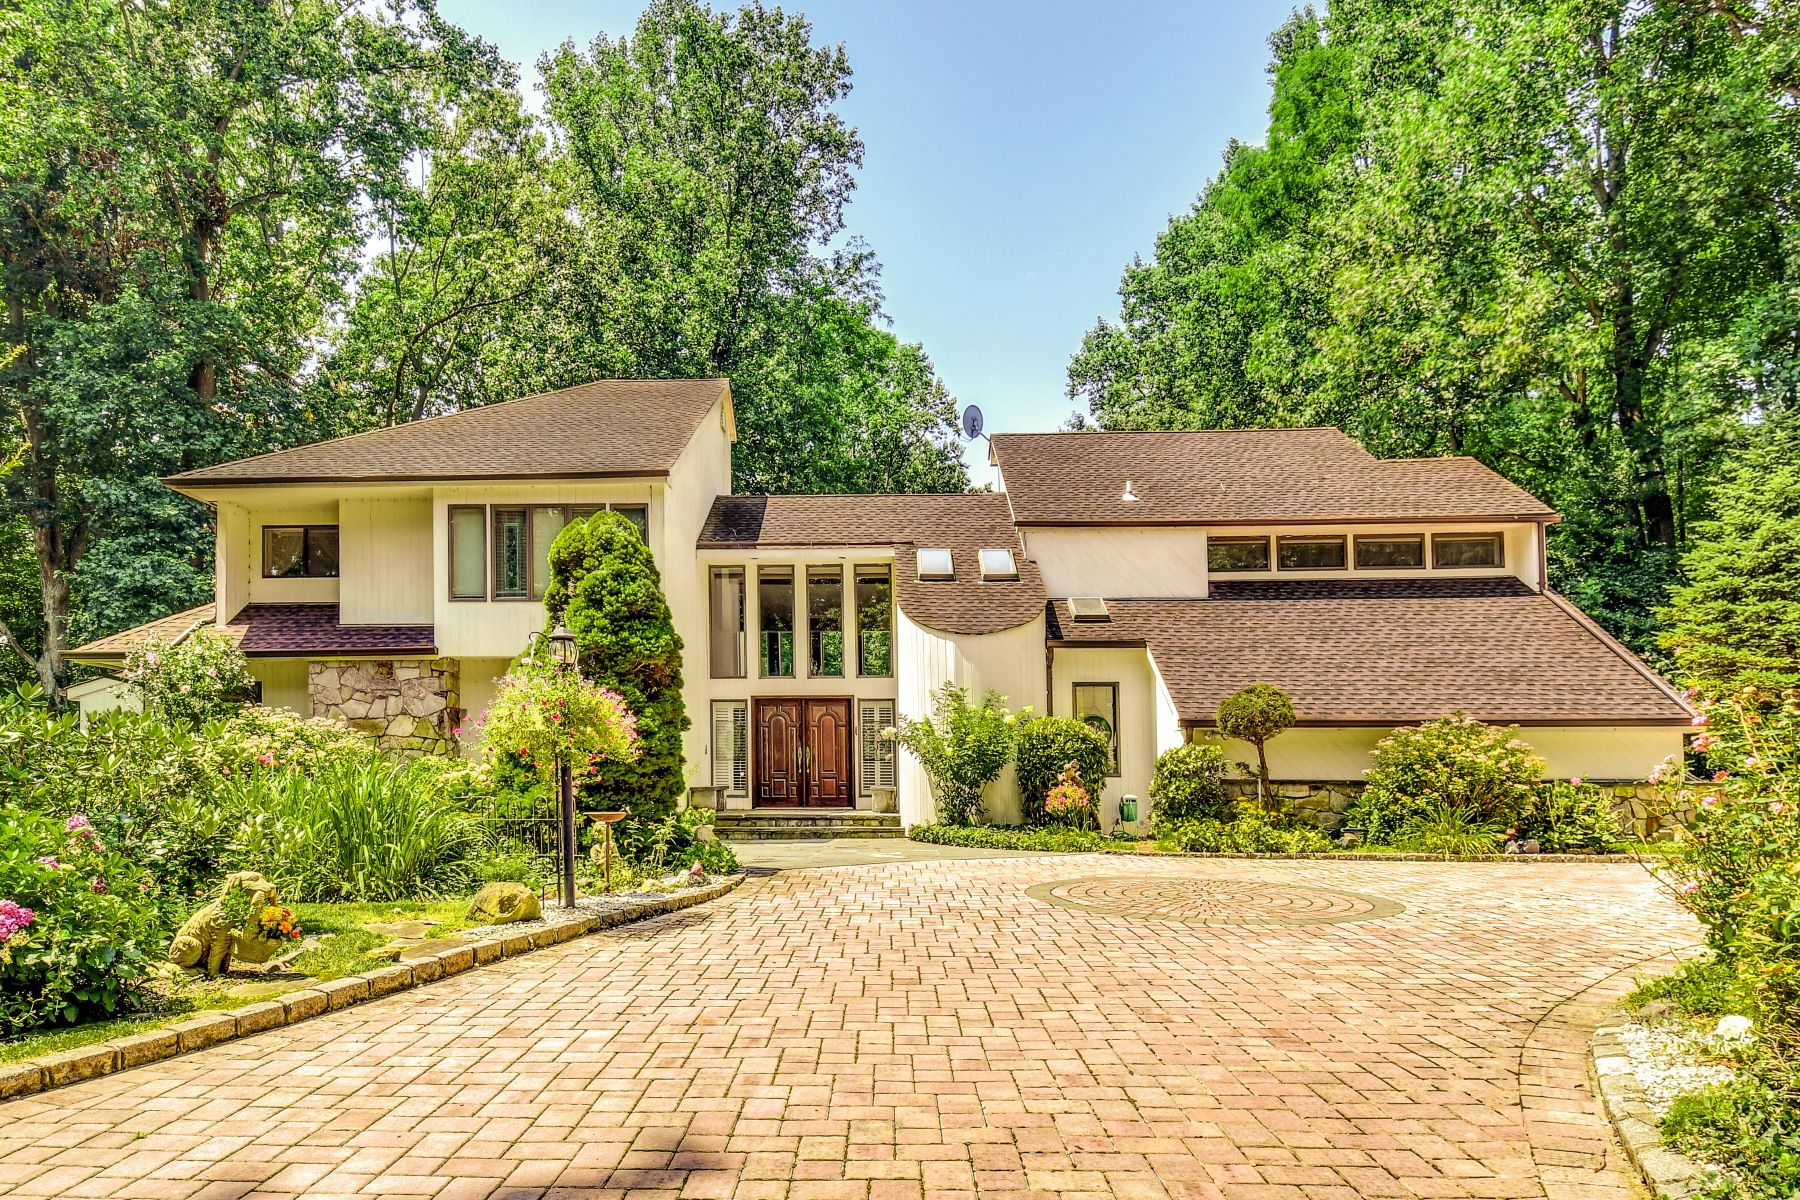 Single Family Homes for Sale at Northport 20 Locust Lane Northport, New York 11768 United States